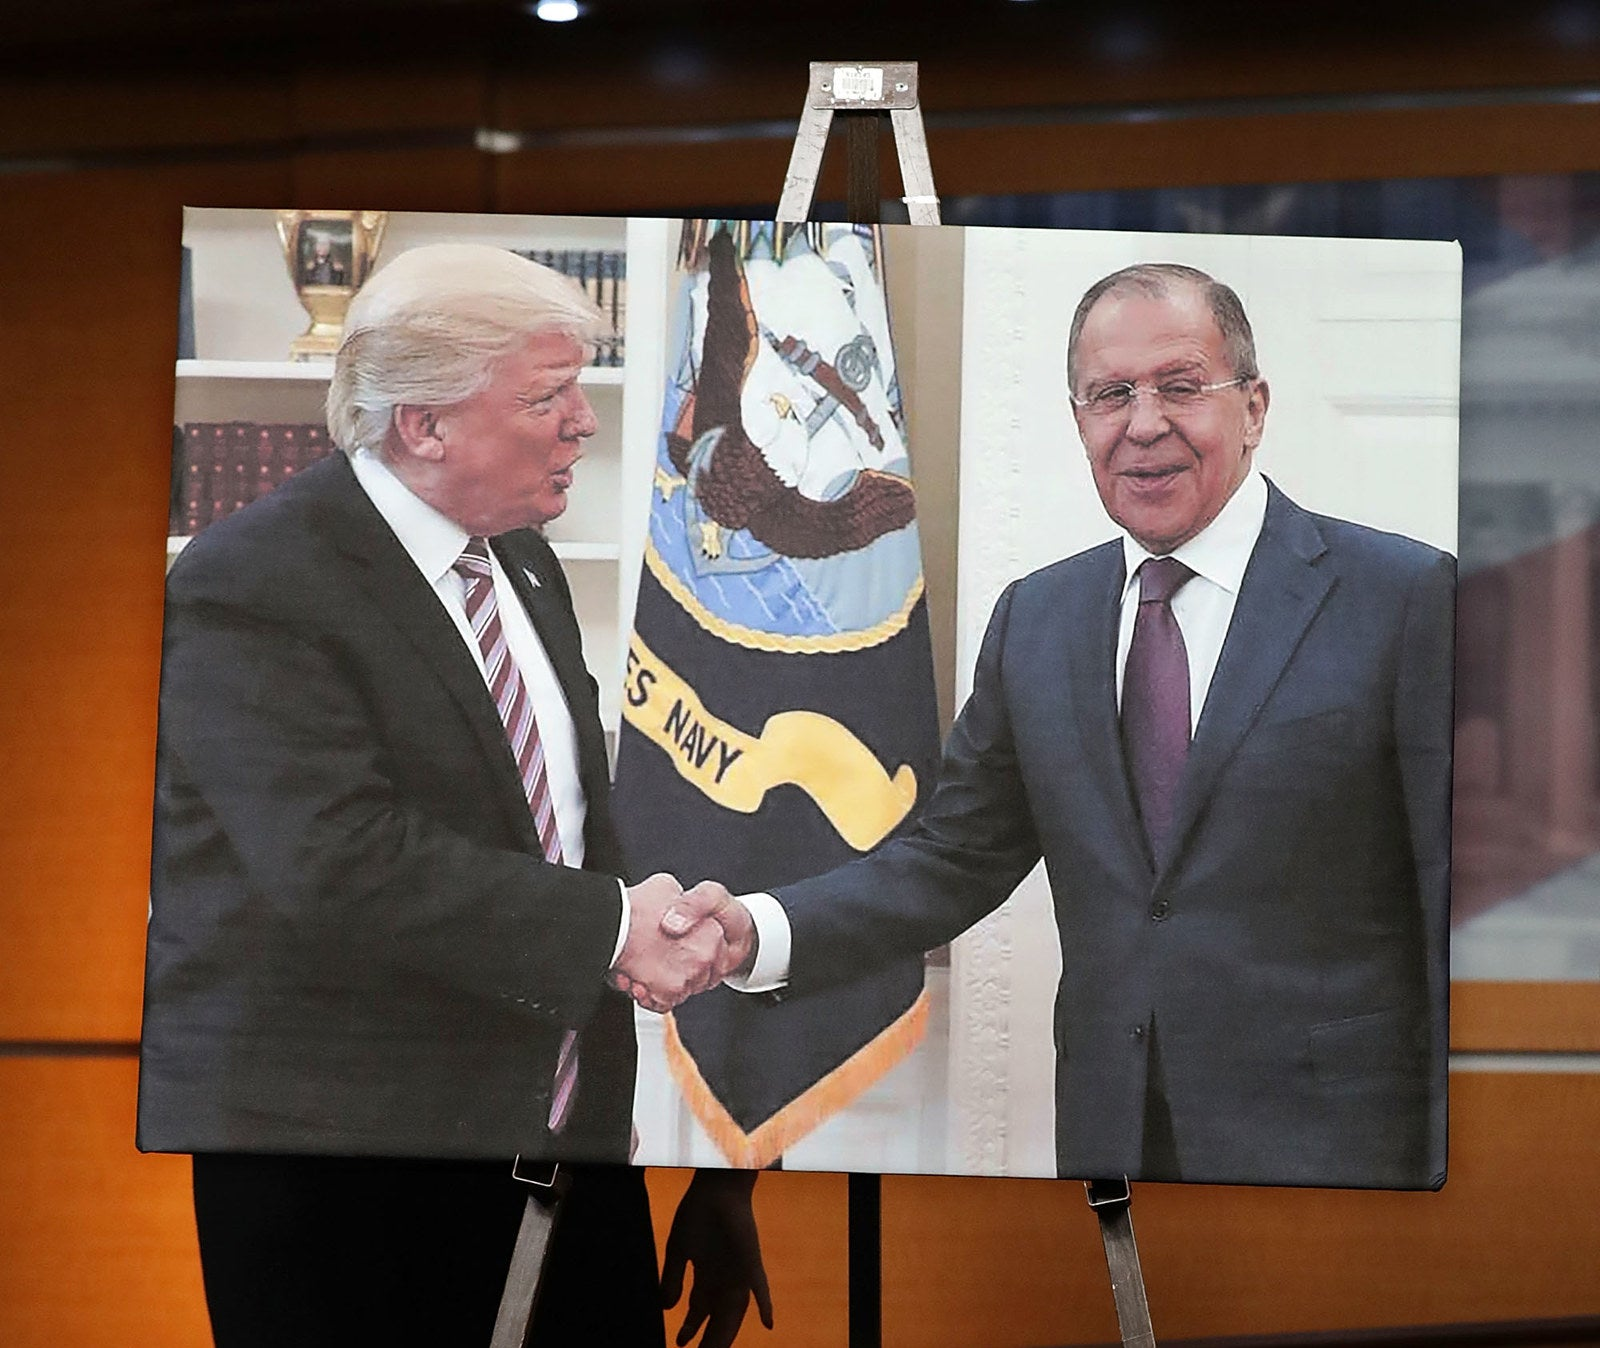 House Democrats displayed a photograph of President Donald Trump welcoming Russian Foreign Minister Sergey Lavrov at the White House during a news conference. The White House meeting came one day after Trump fired FBI director James Comey.